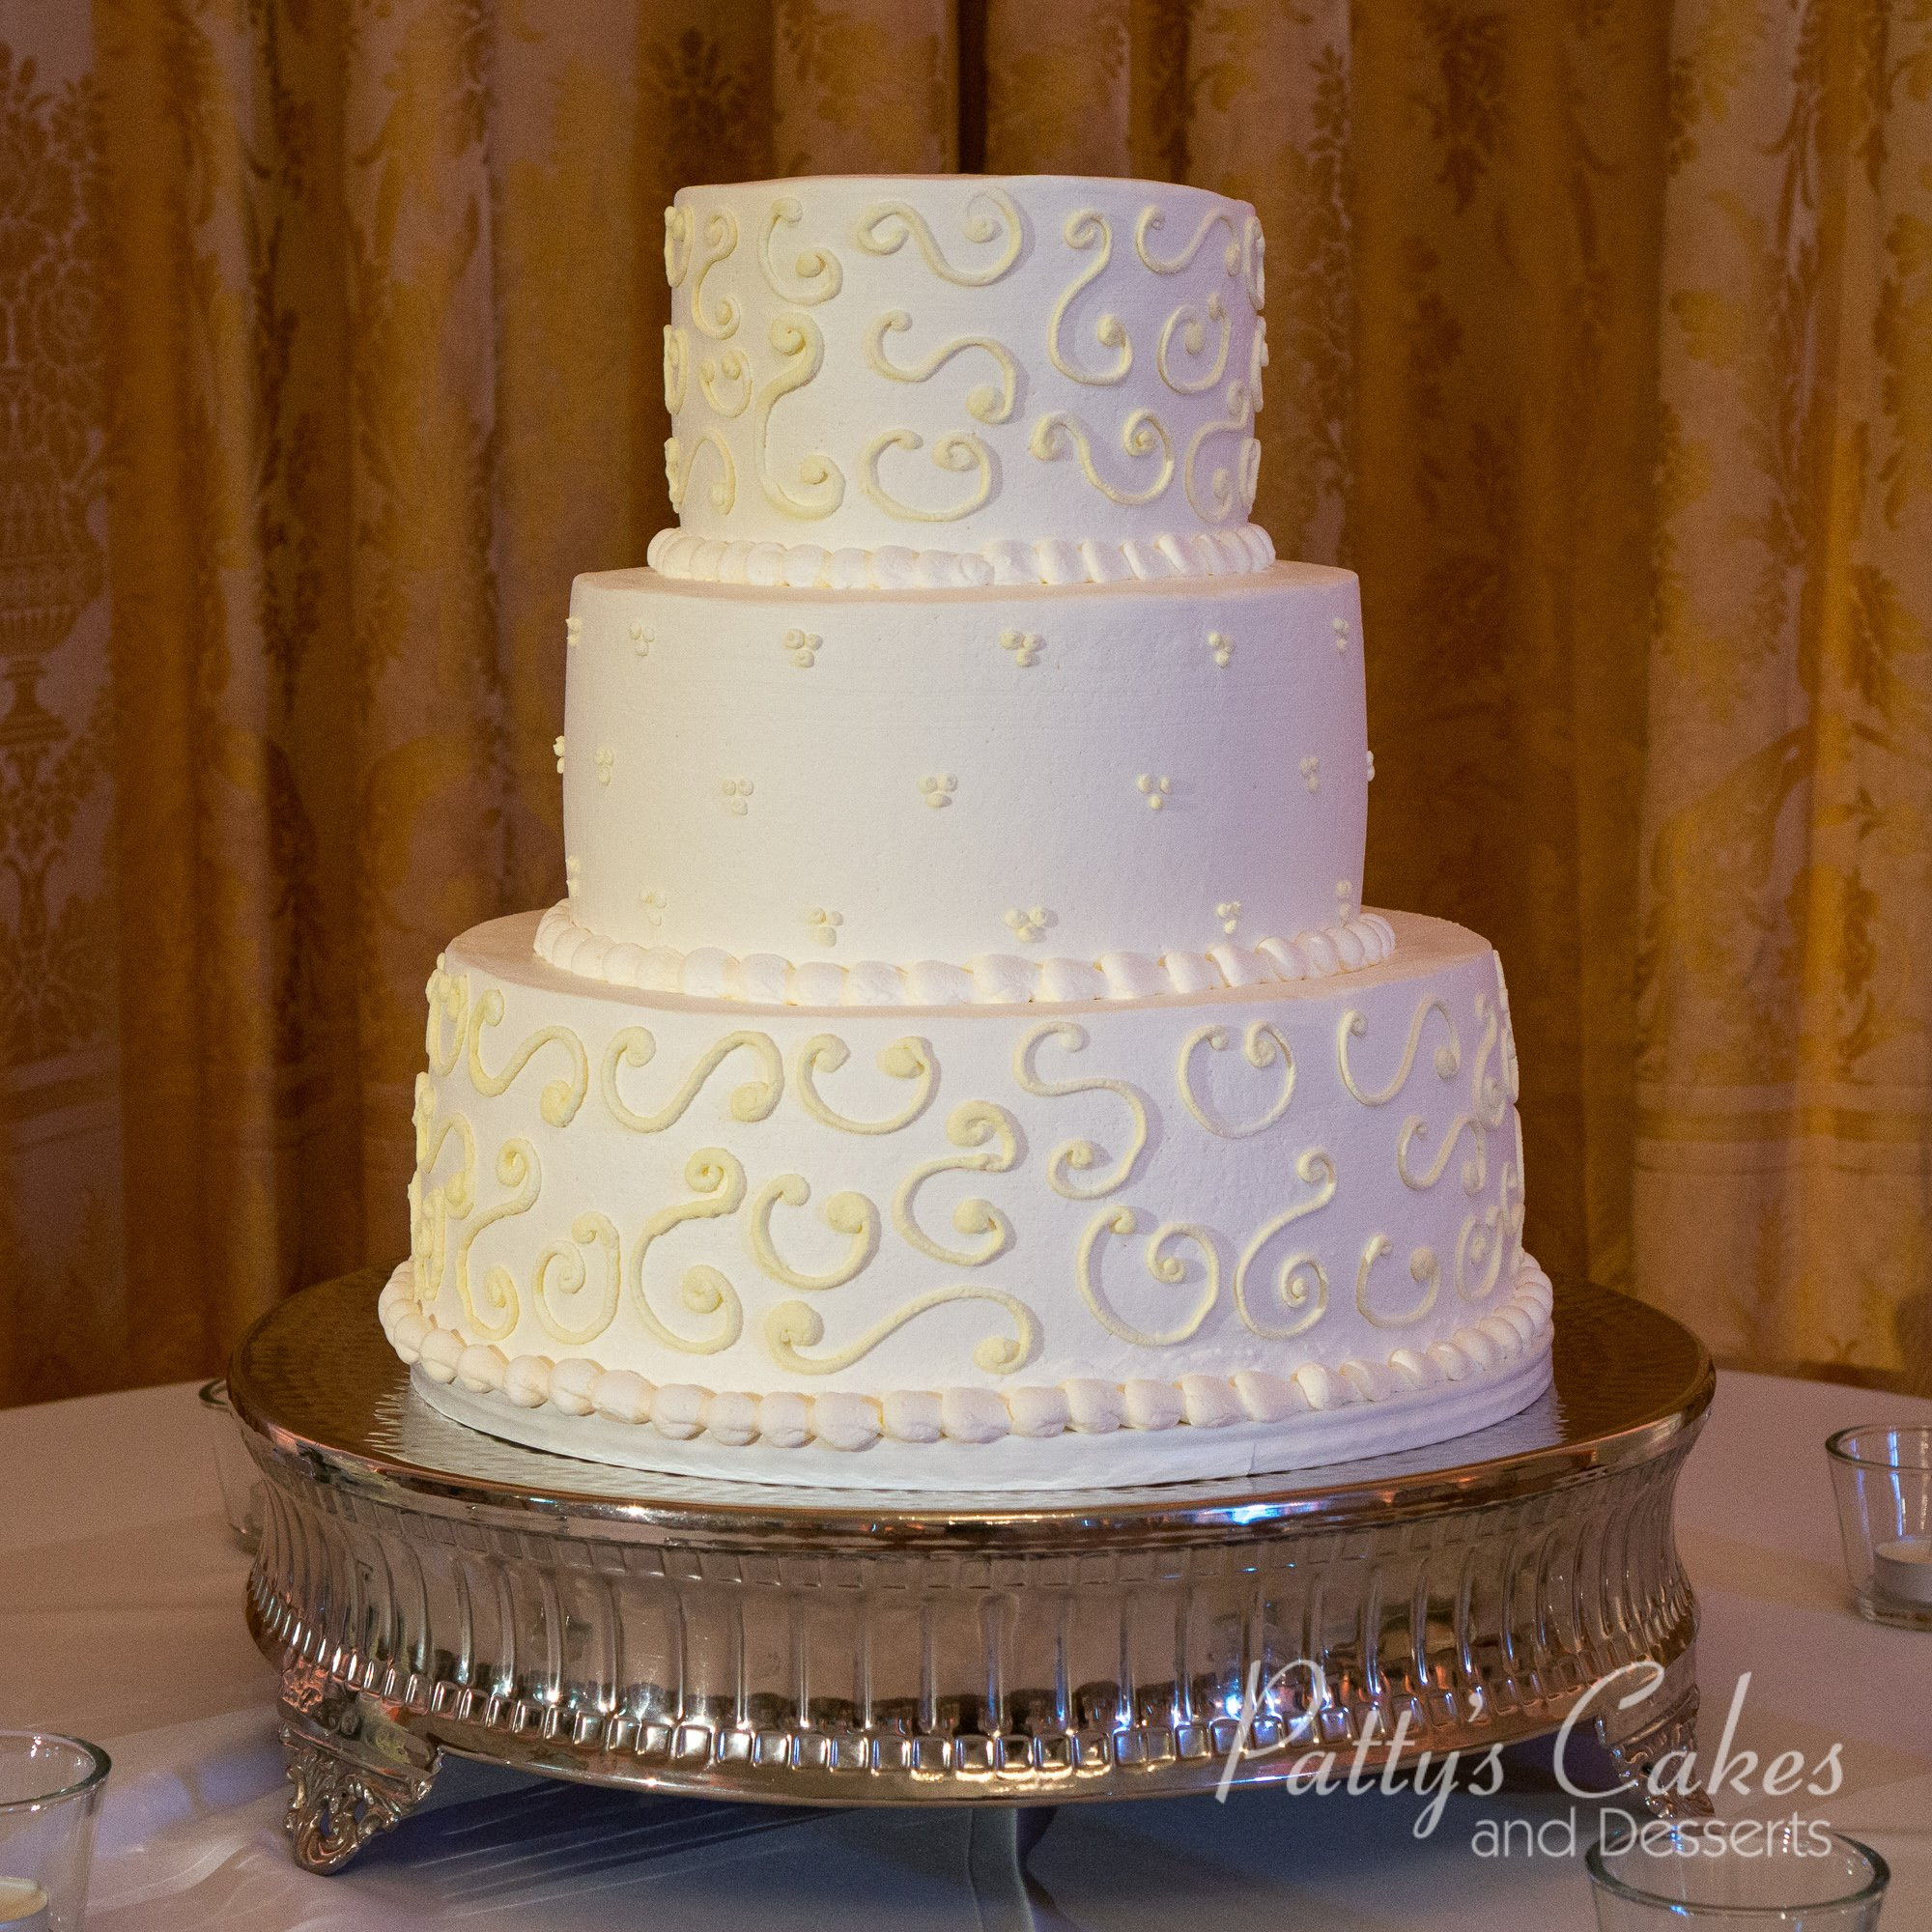 small wedding cakes images photo of a small wedding cake patty s cakes and desserts 20238